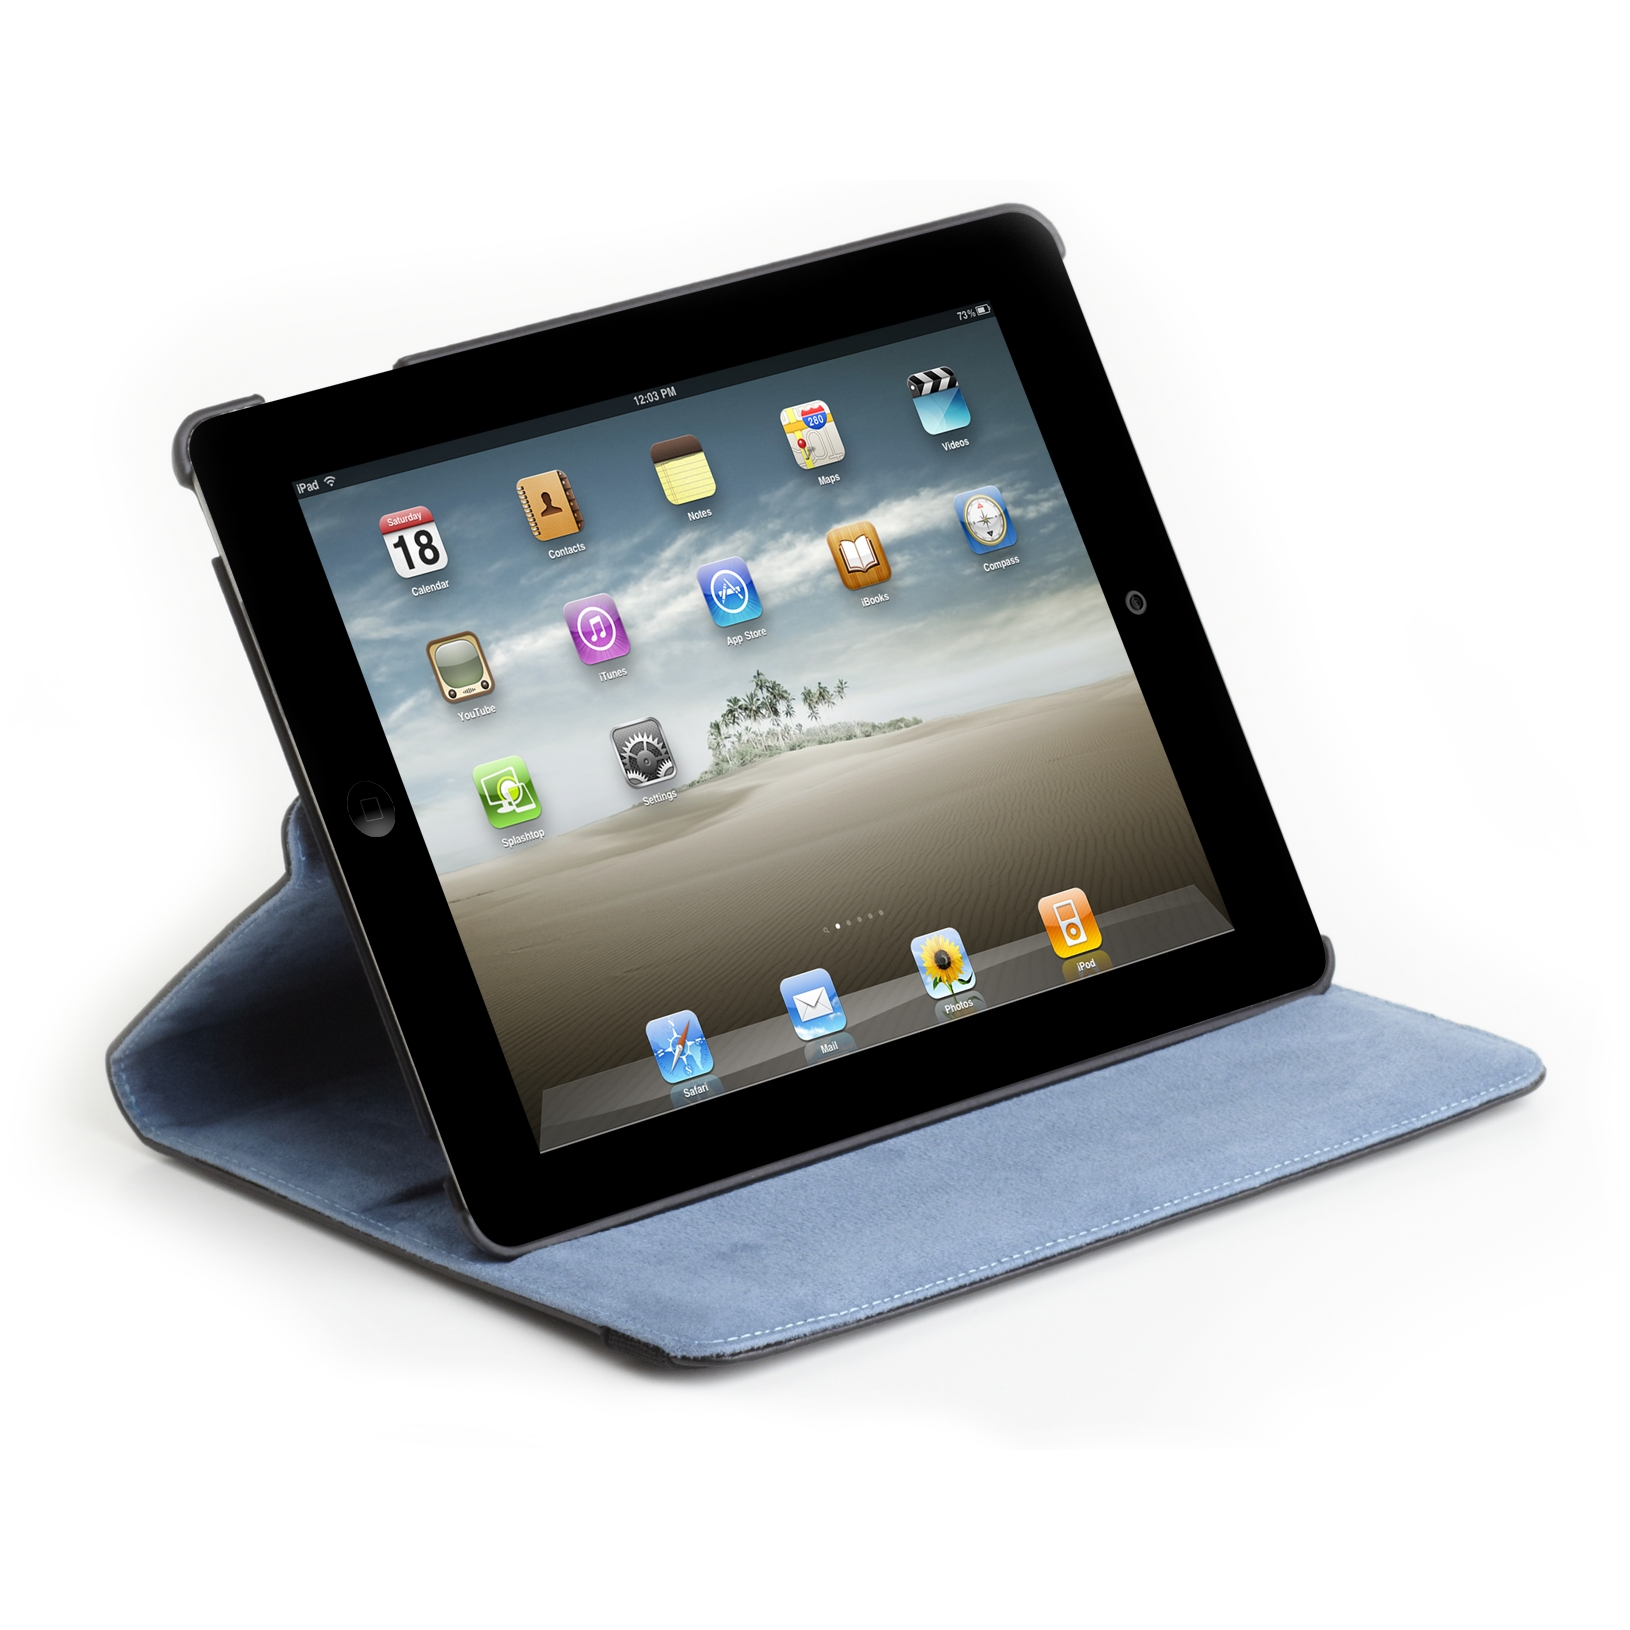 Versavu Case Amp Stand For Ipad 2 Thz045us Black Blue